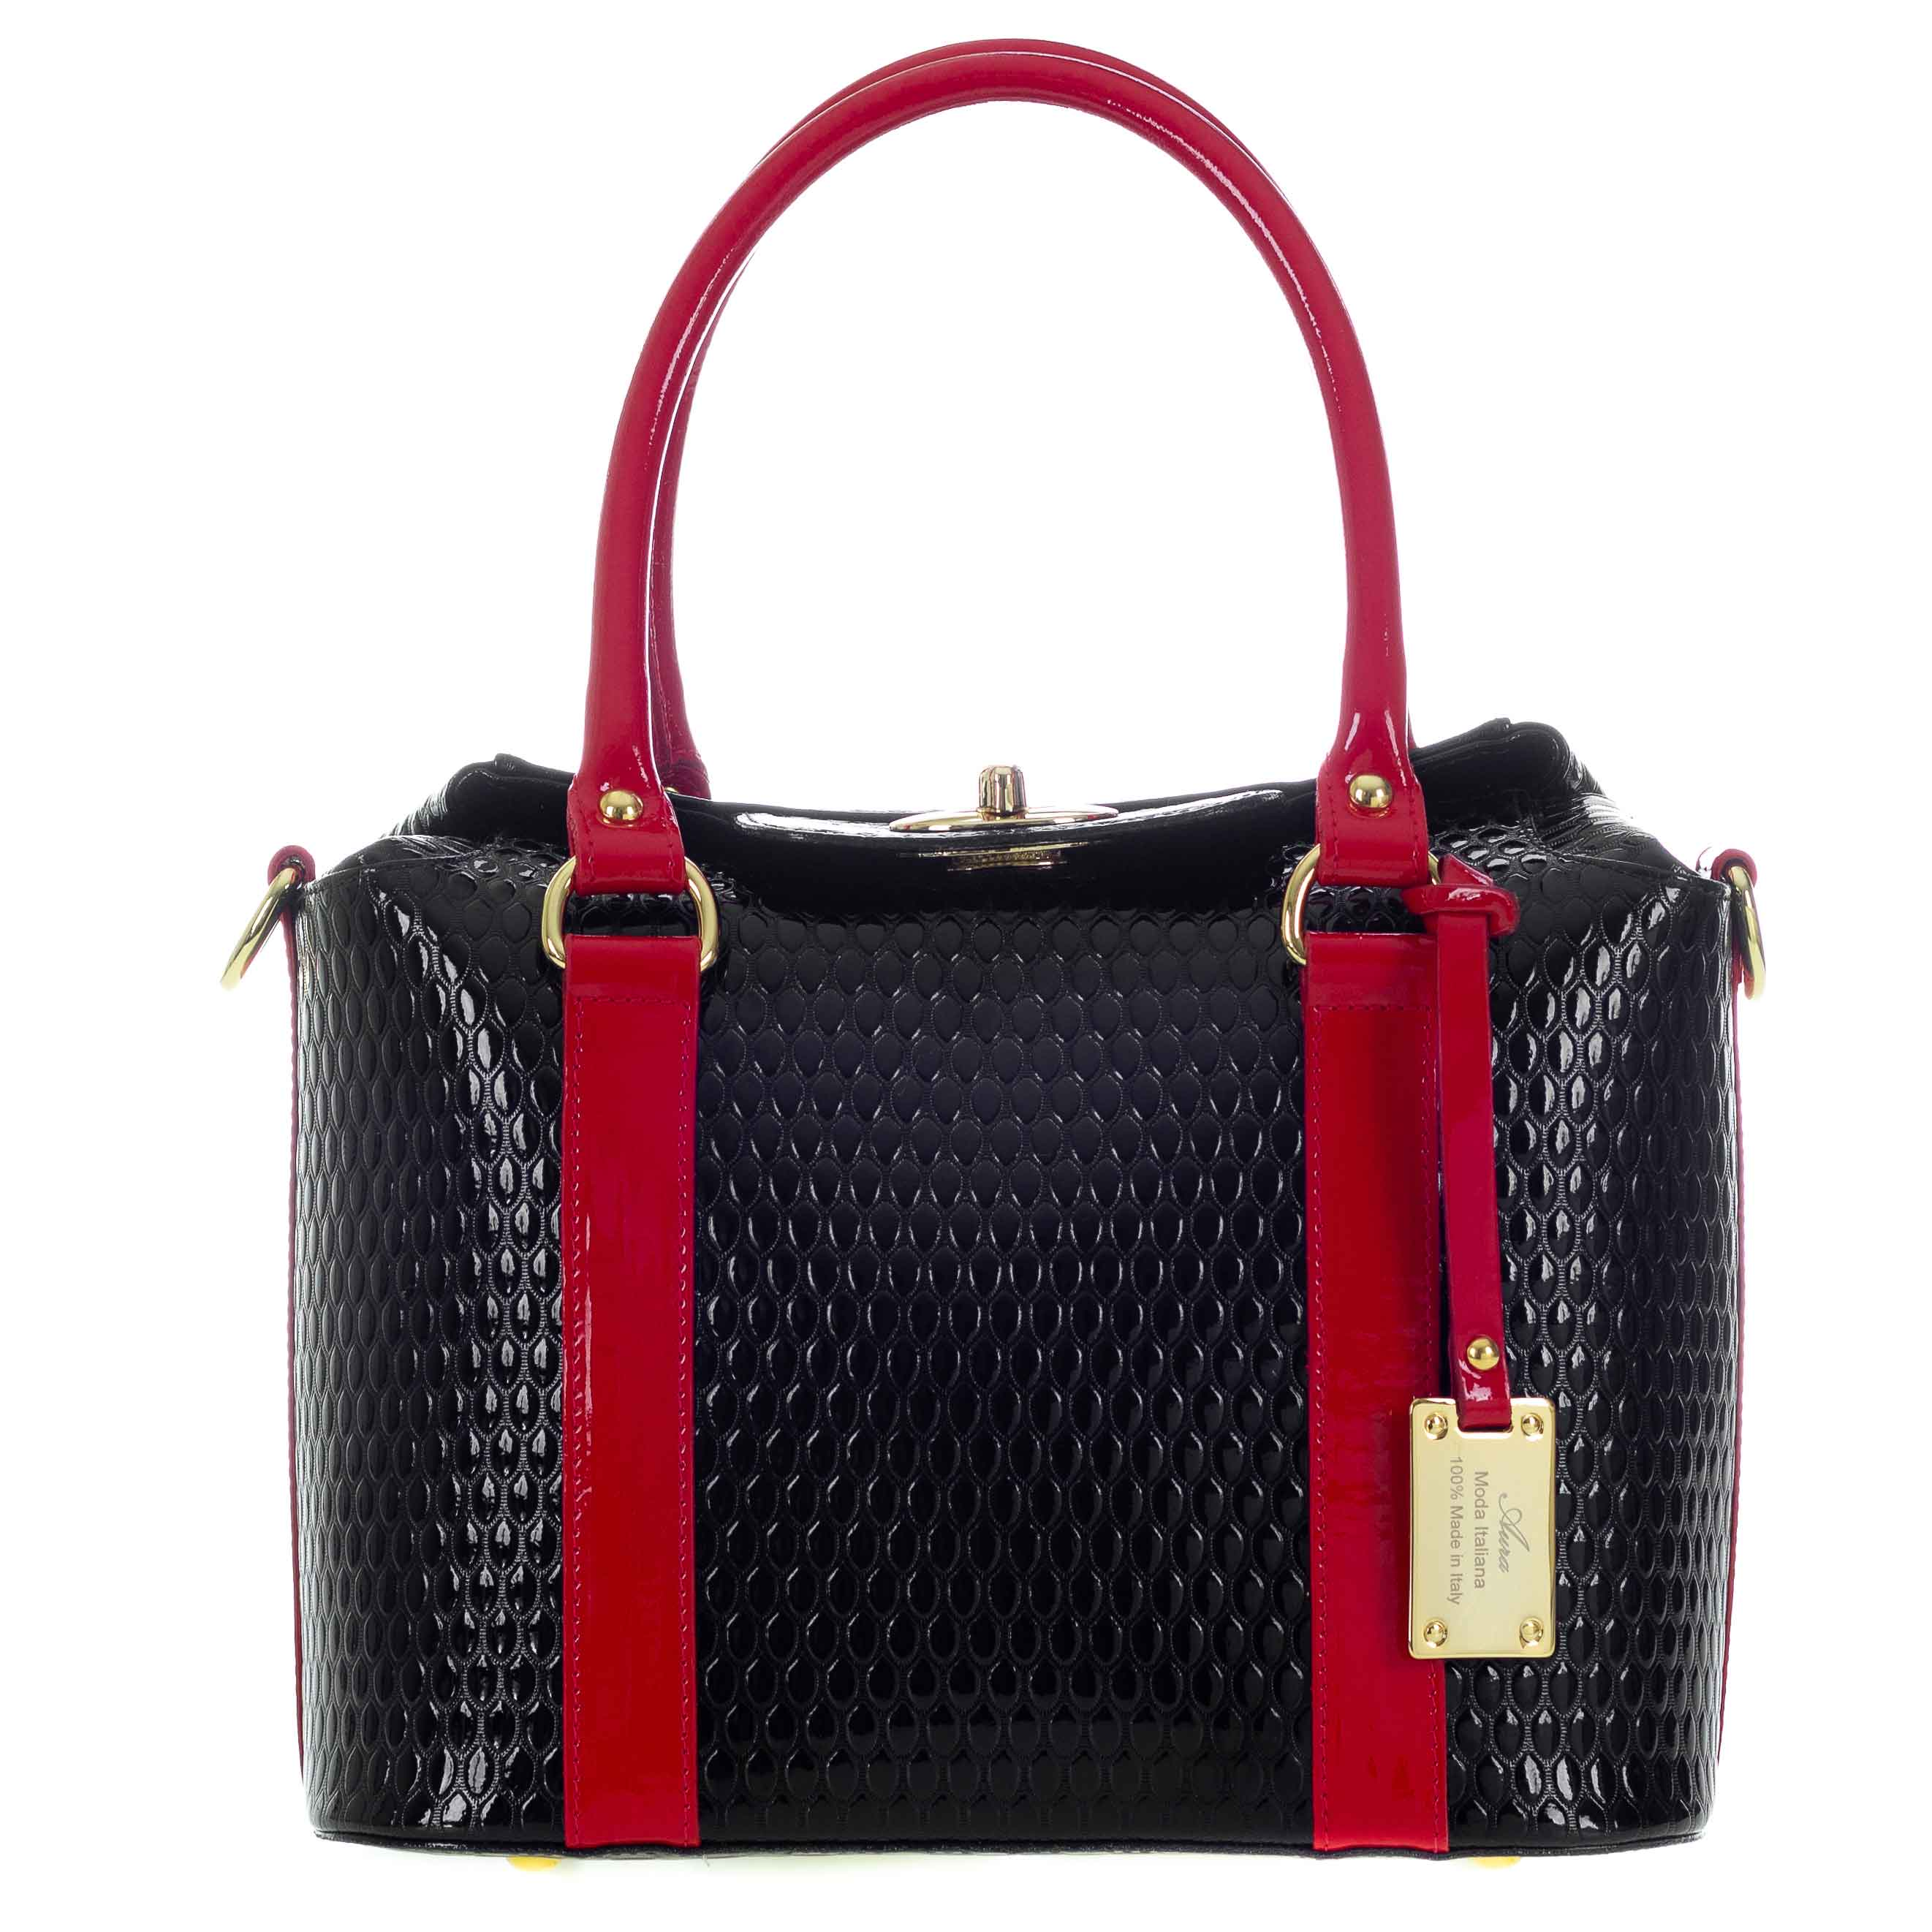 c6e2896acb803 Black Patent Leather Structured Tote Handbag Made in Italy by Aura ...